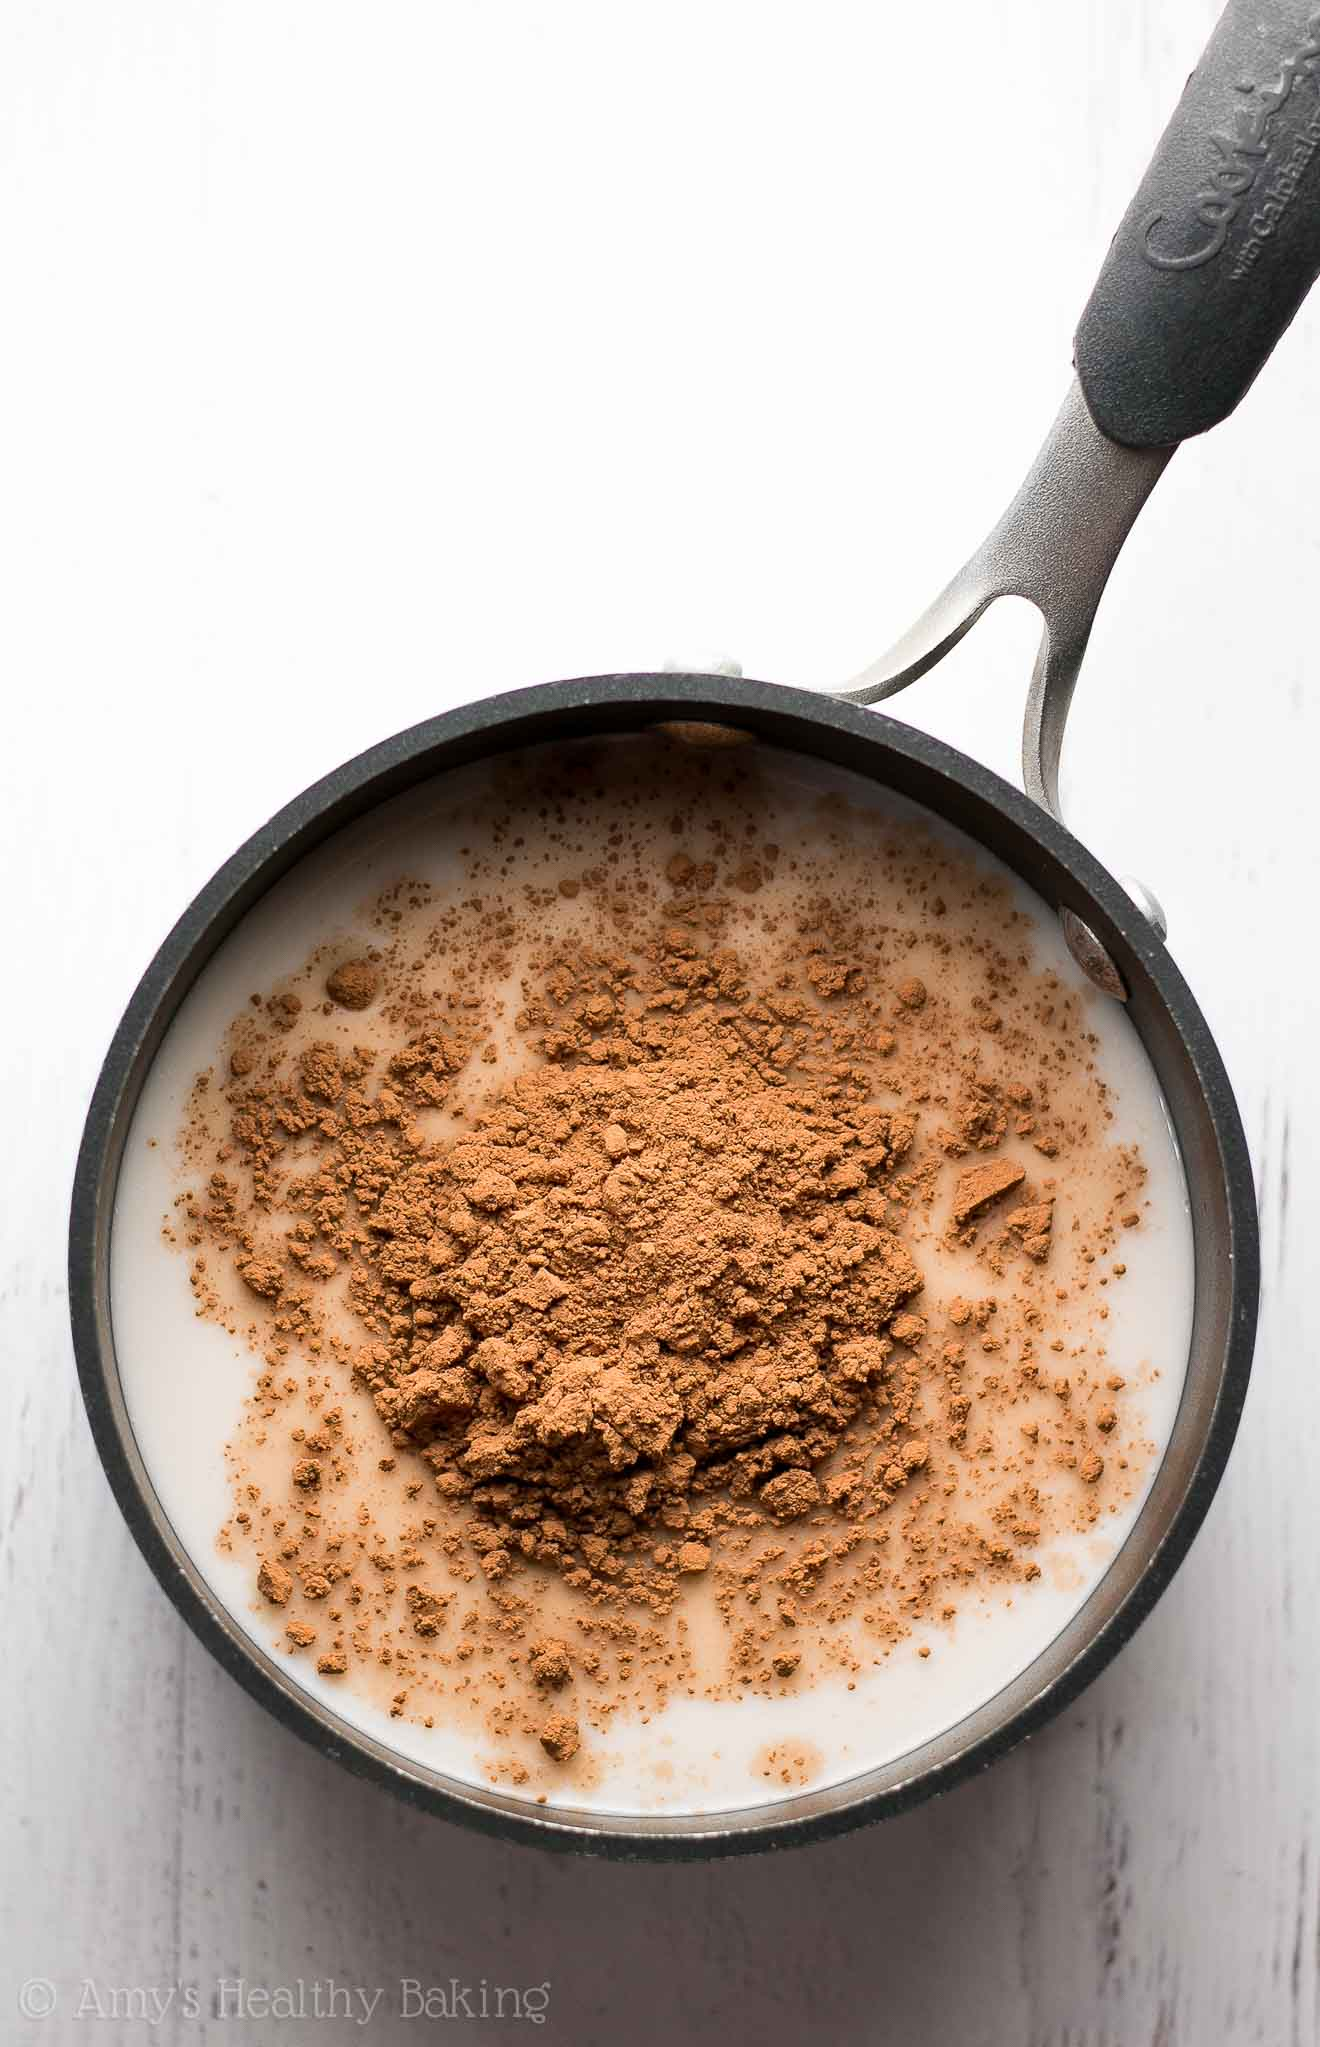 Make your coffee taste like a peppermint mocha with this healthy coffee creamer! It's SO easy to make & just 2 calories per tablespoon!